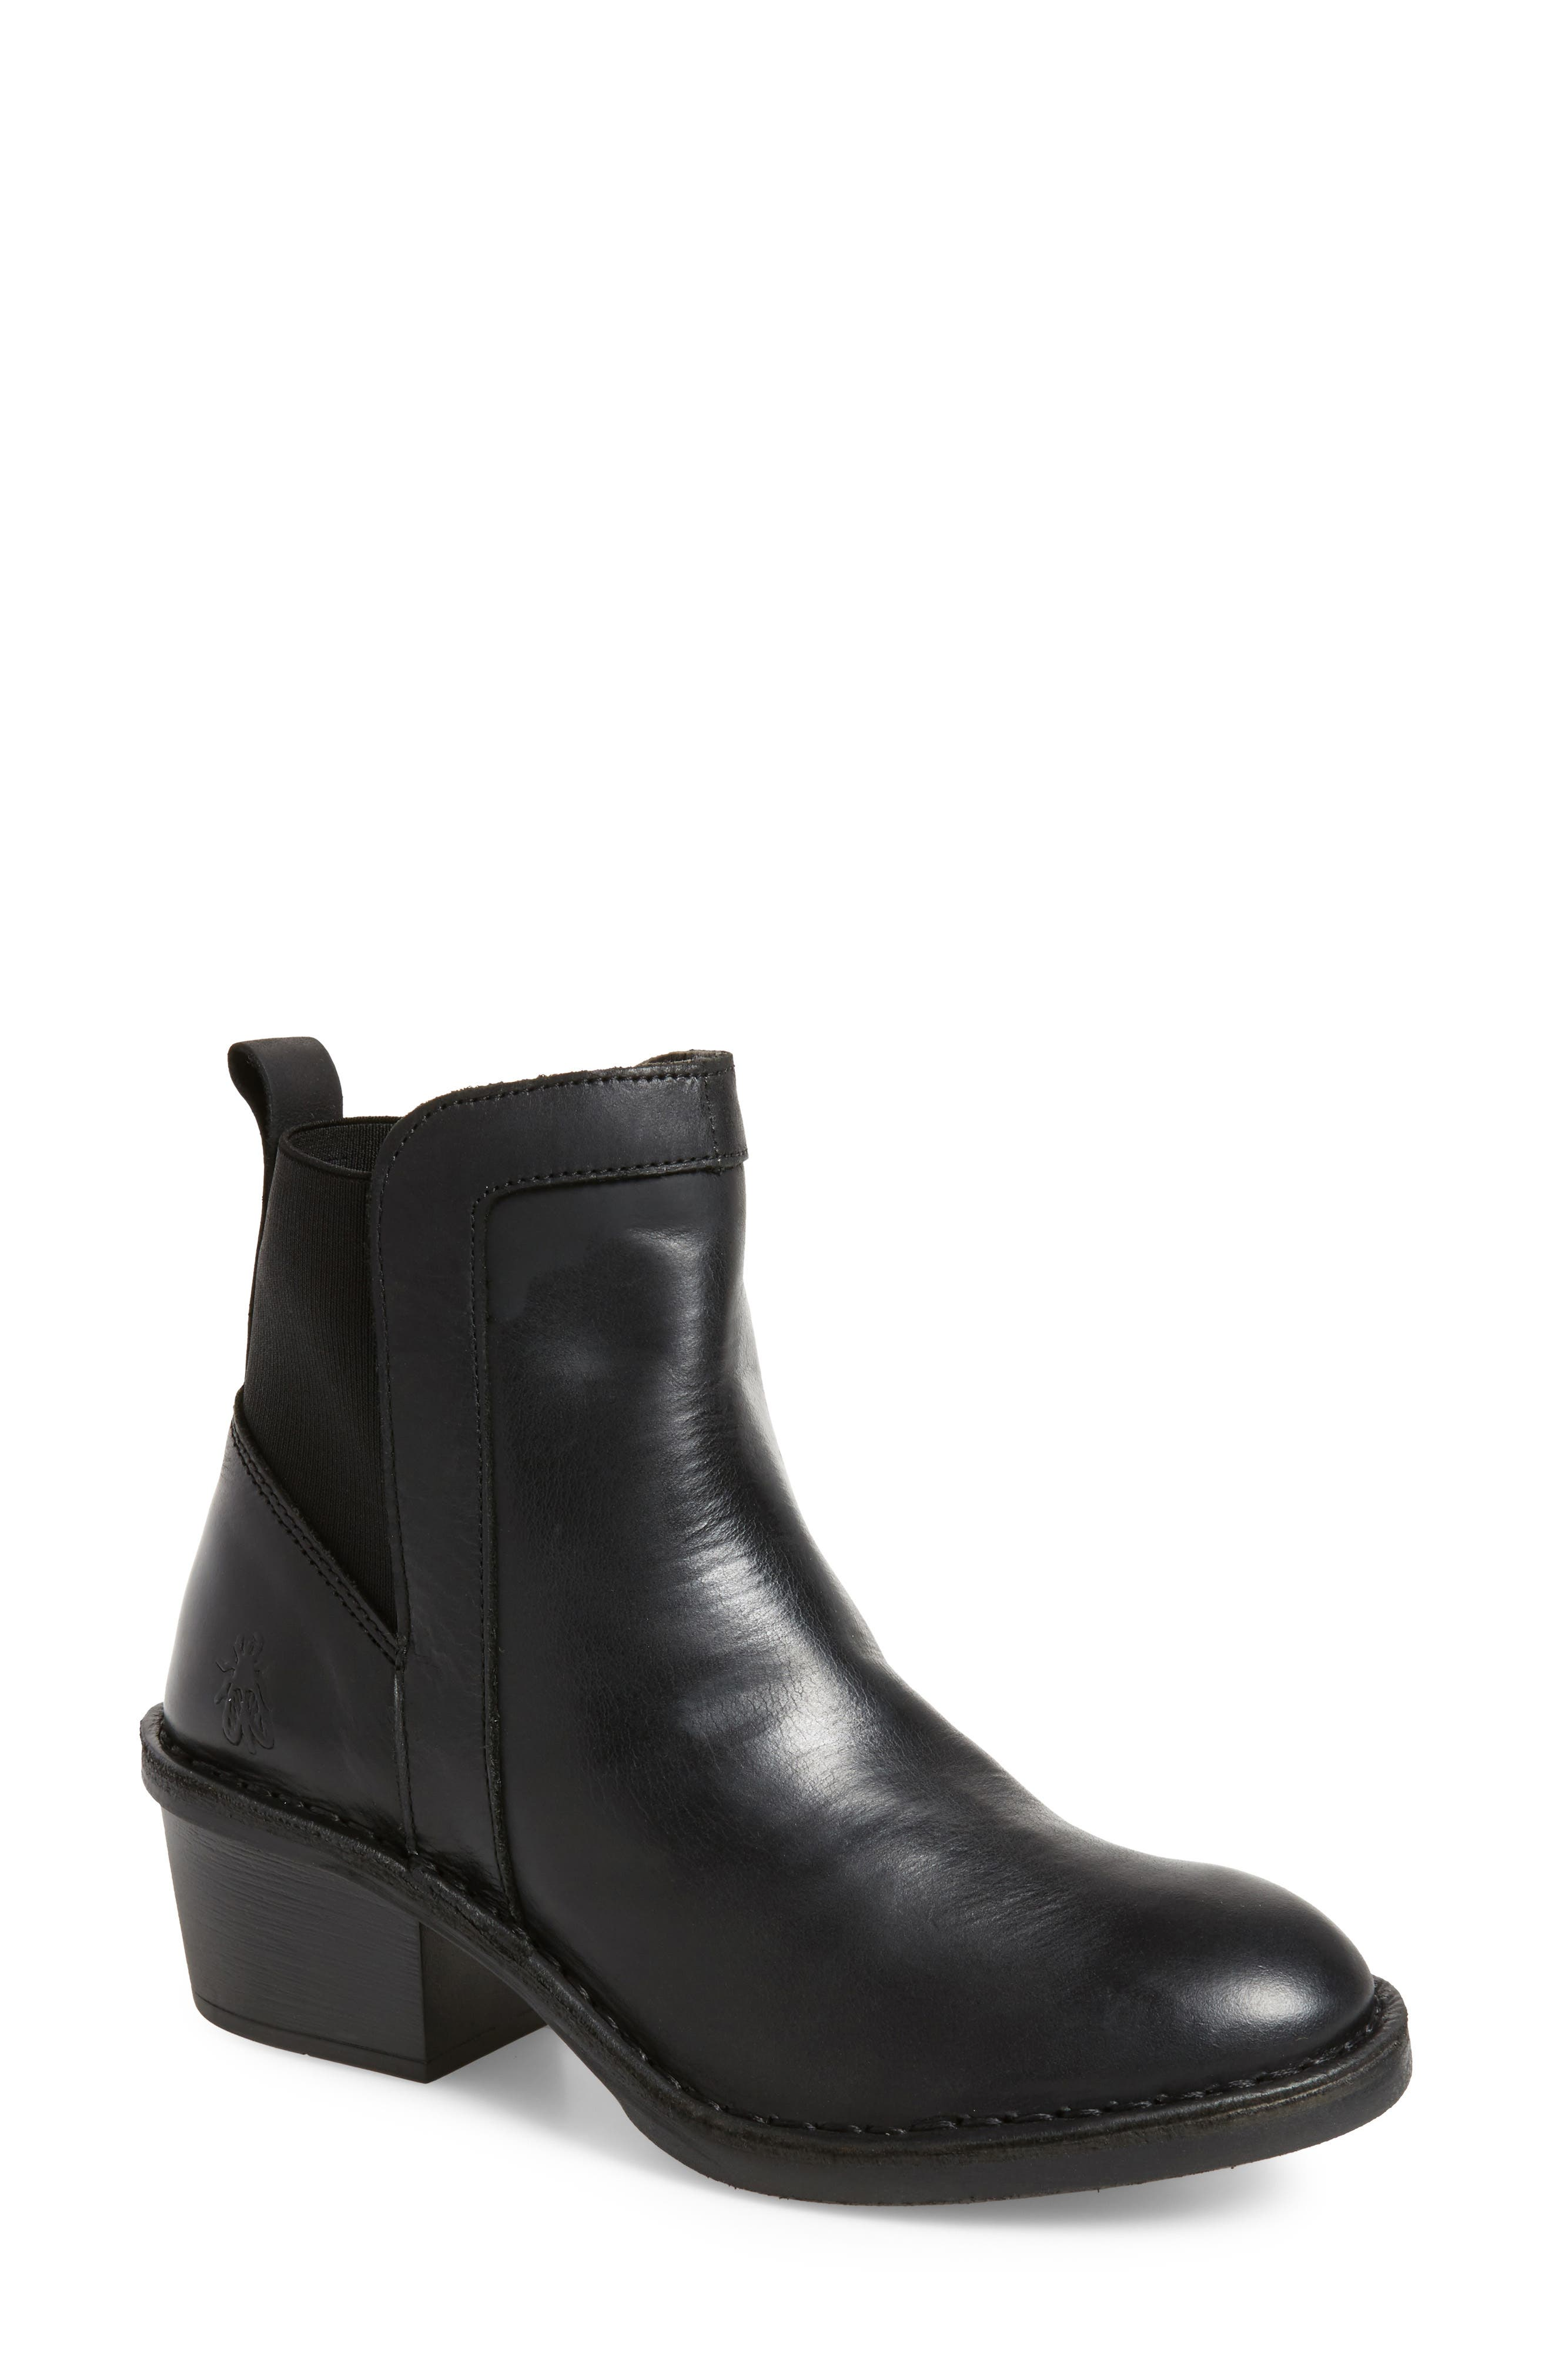 Dicy Bootie,                             Main thumbnail 1, color,                             001